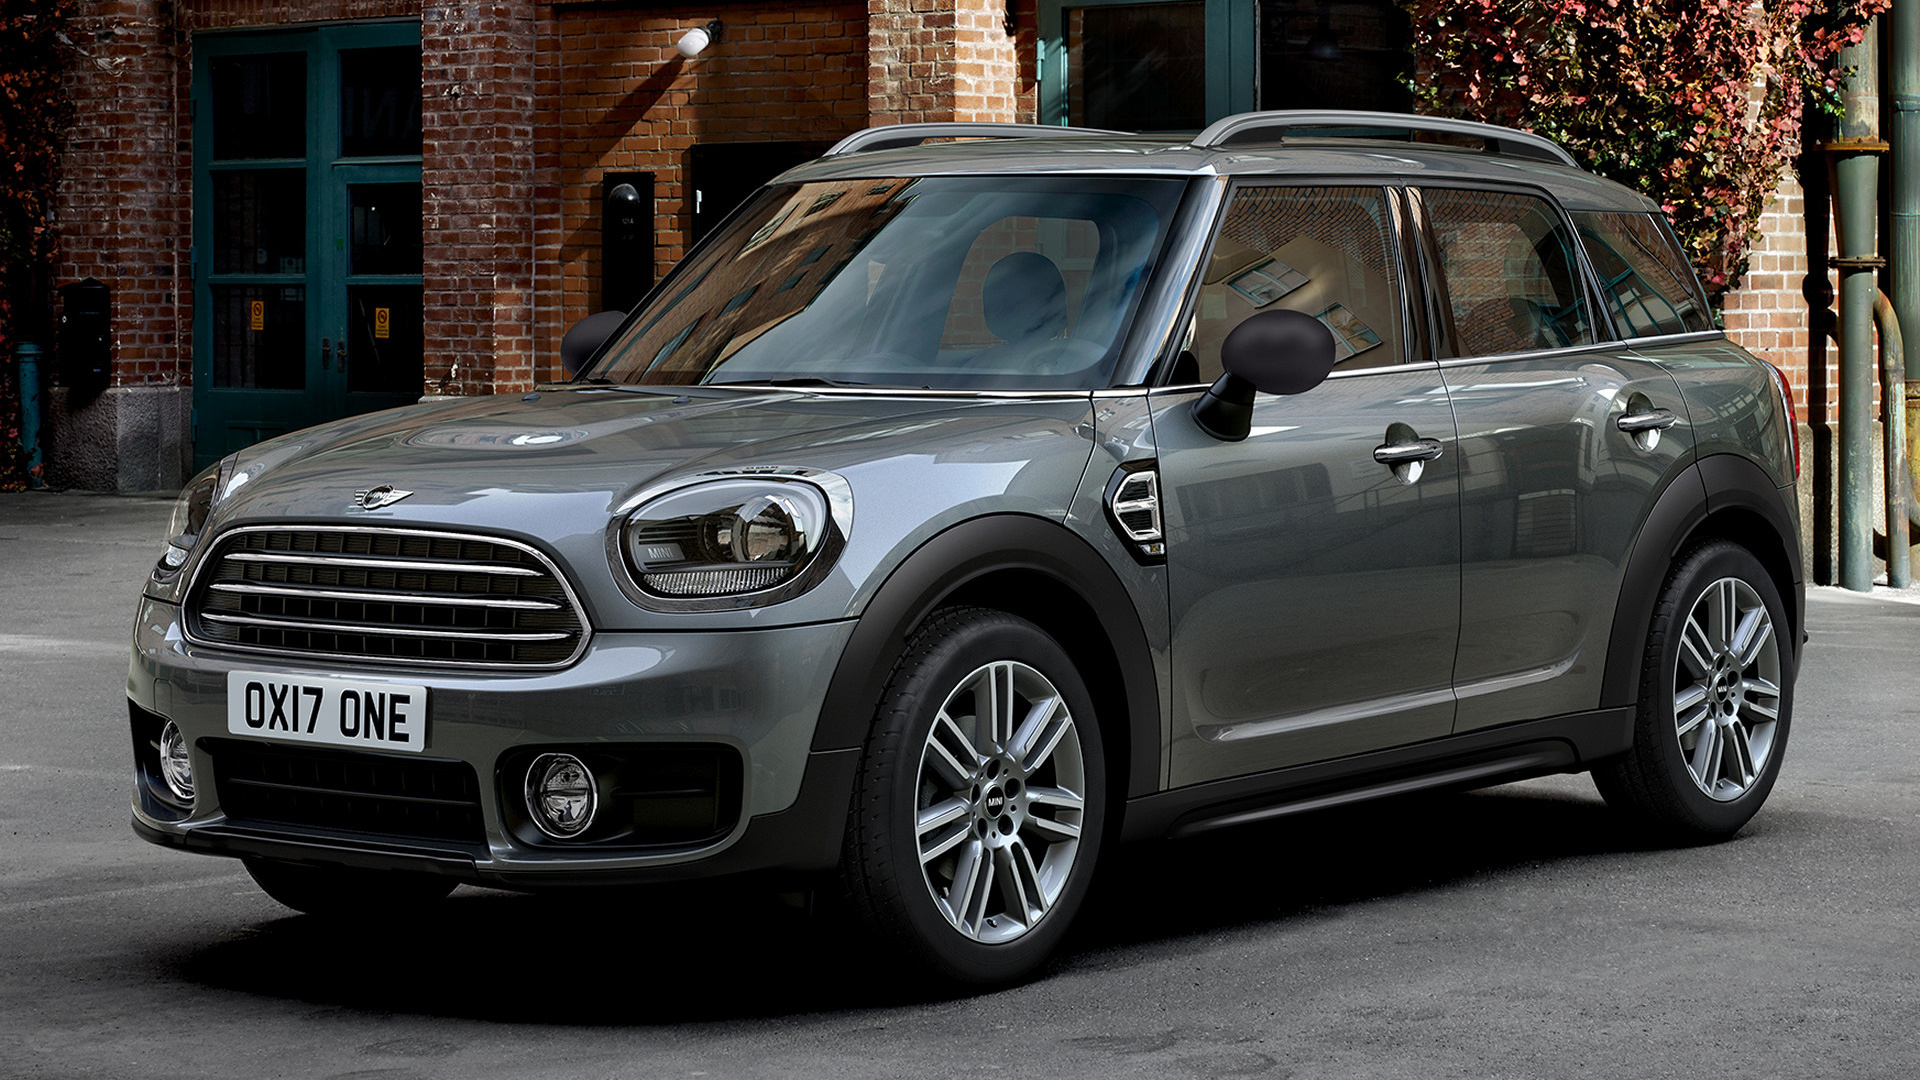 2017 mini one countryman wallpapers and hd images car. Black Bedroom Furniture Sets. Home Design Ideas